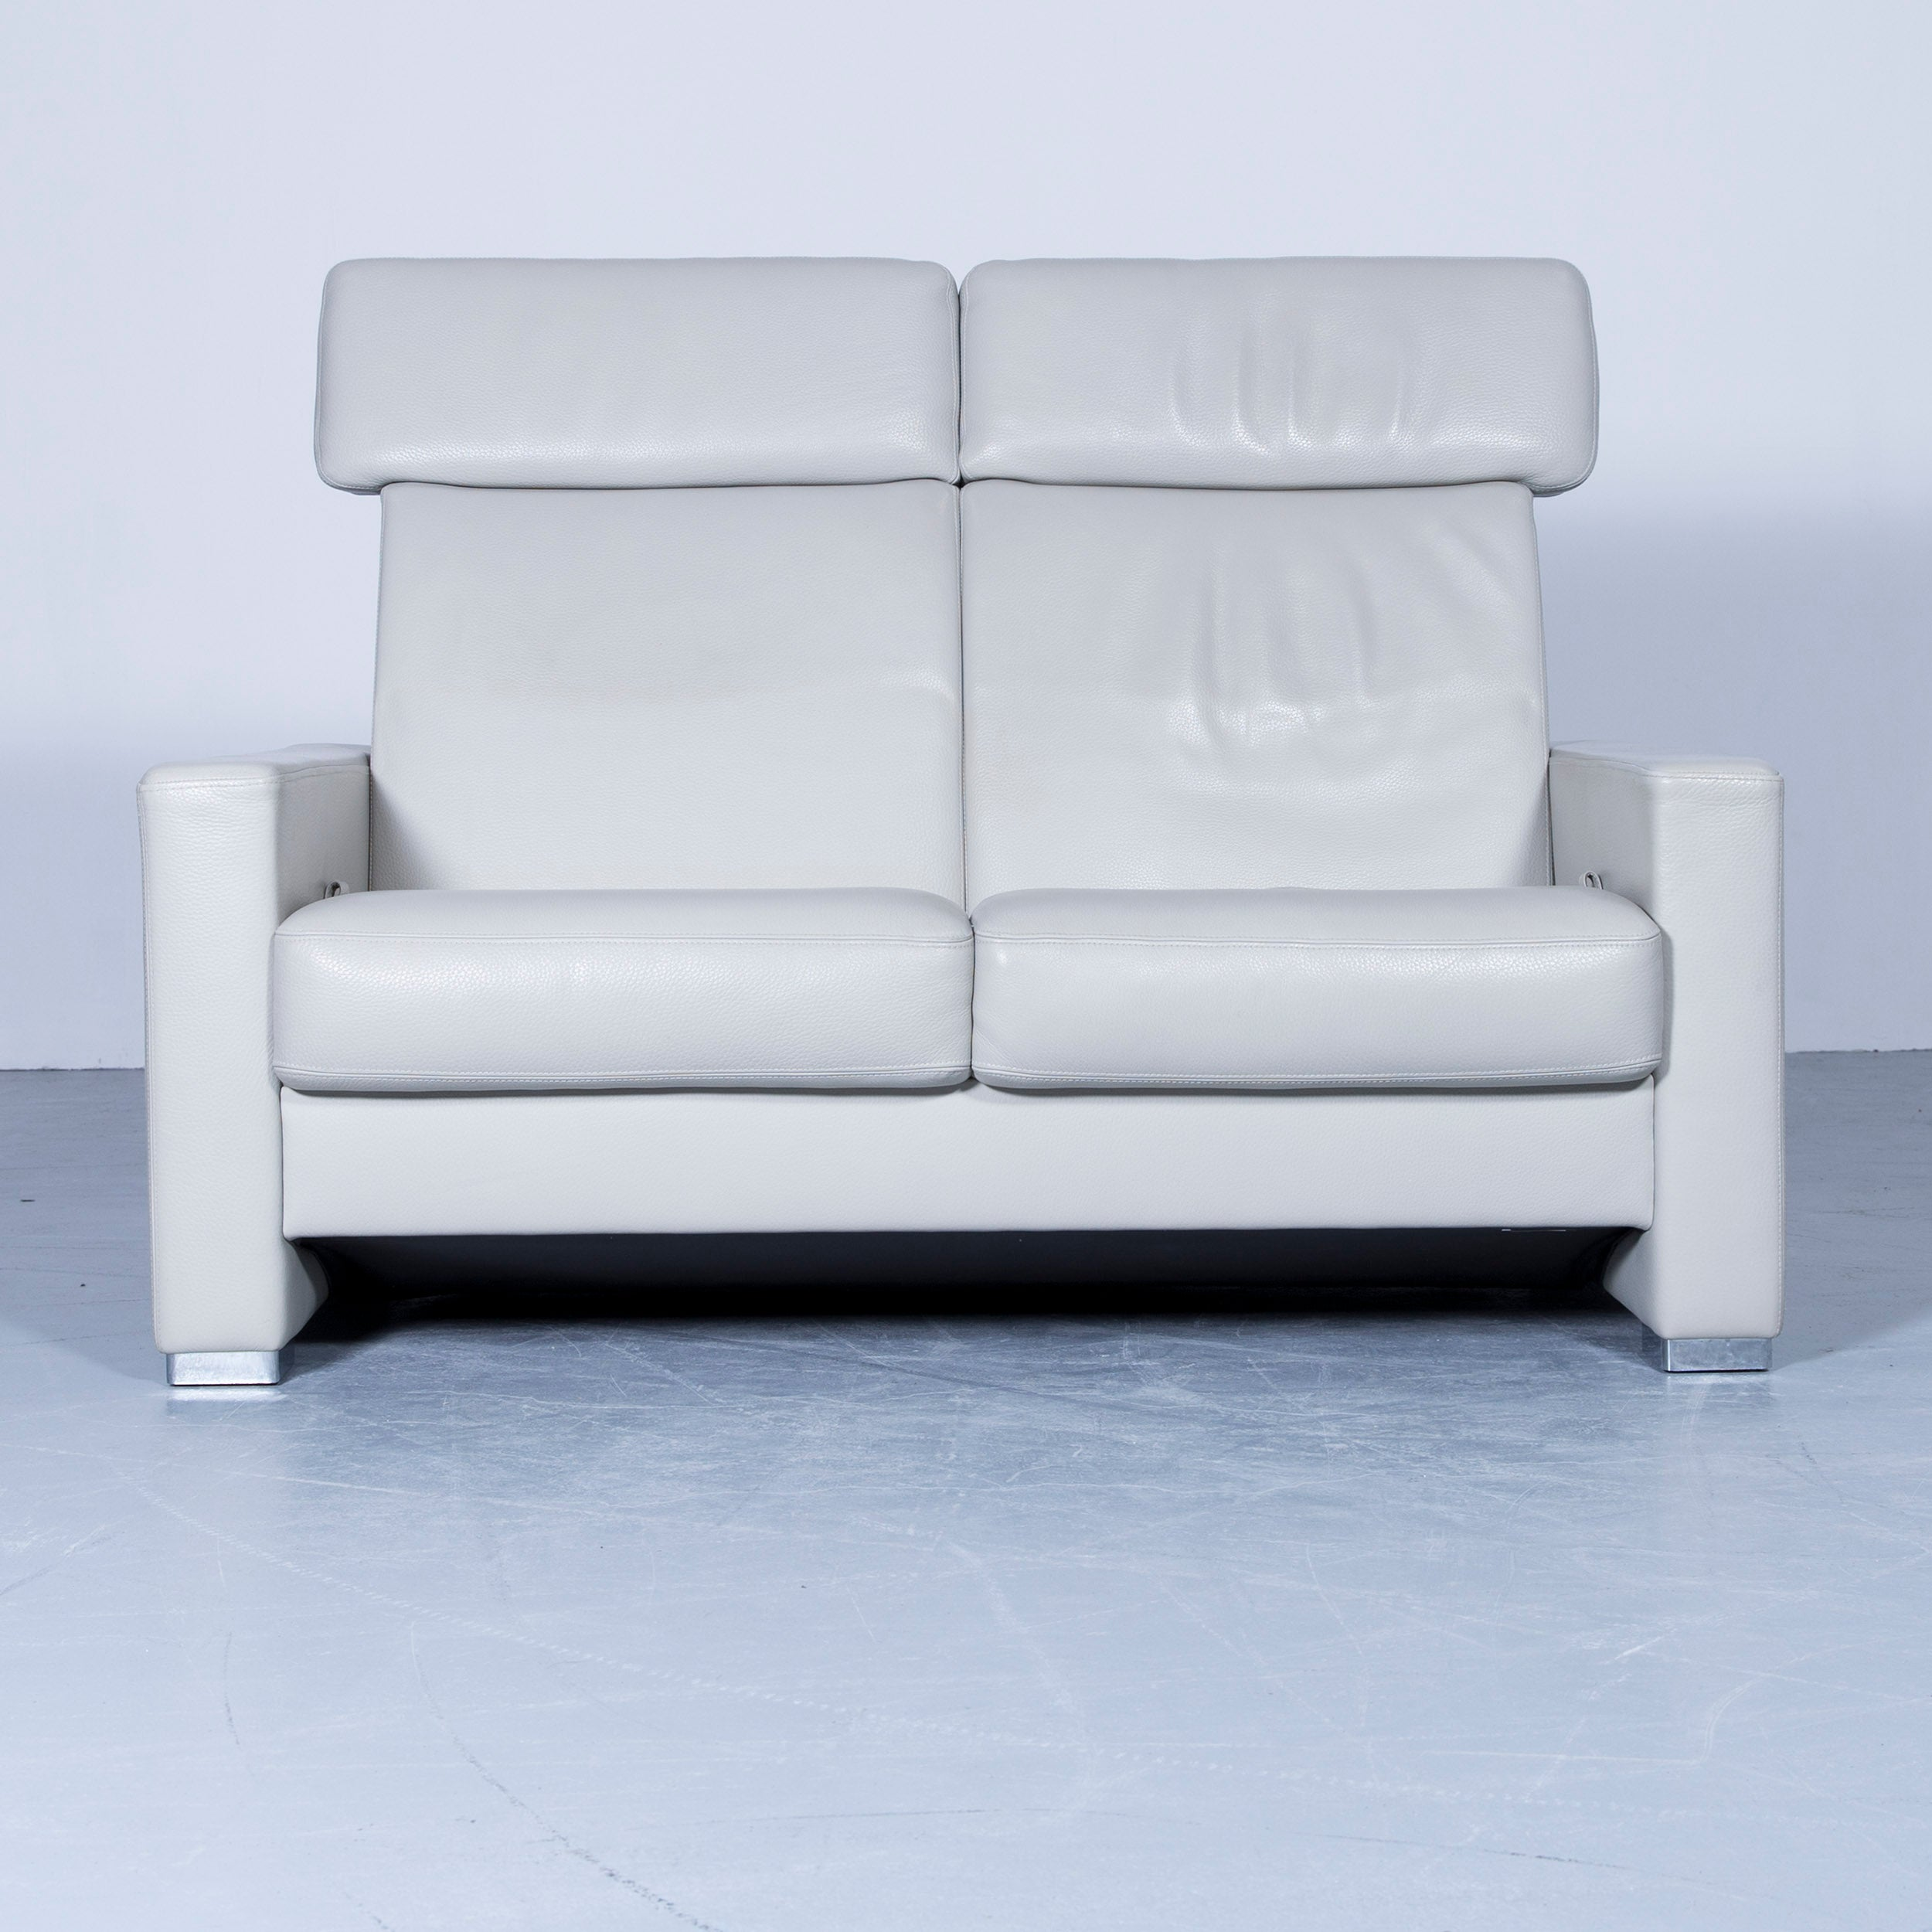 Brühl And Sippold Designer Leather Sofa Crème Beige Function Two Seat Modern  For Sale At 1stdibs